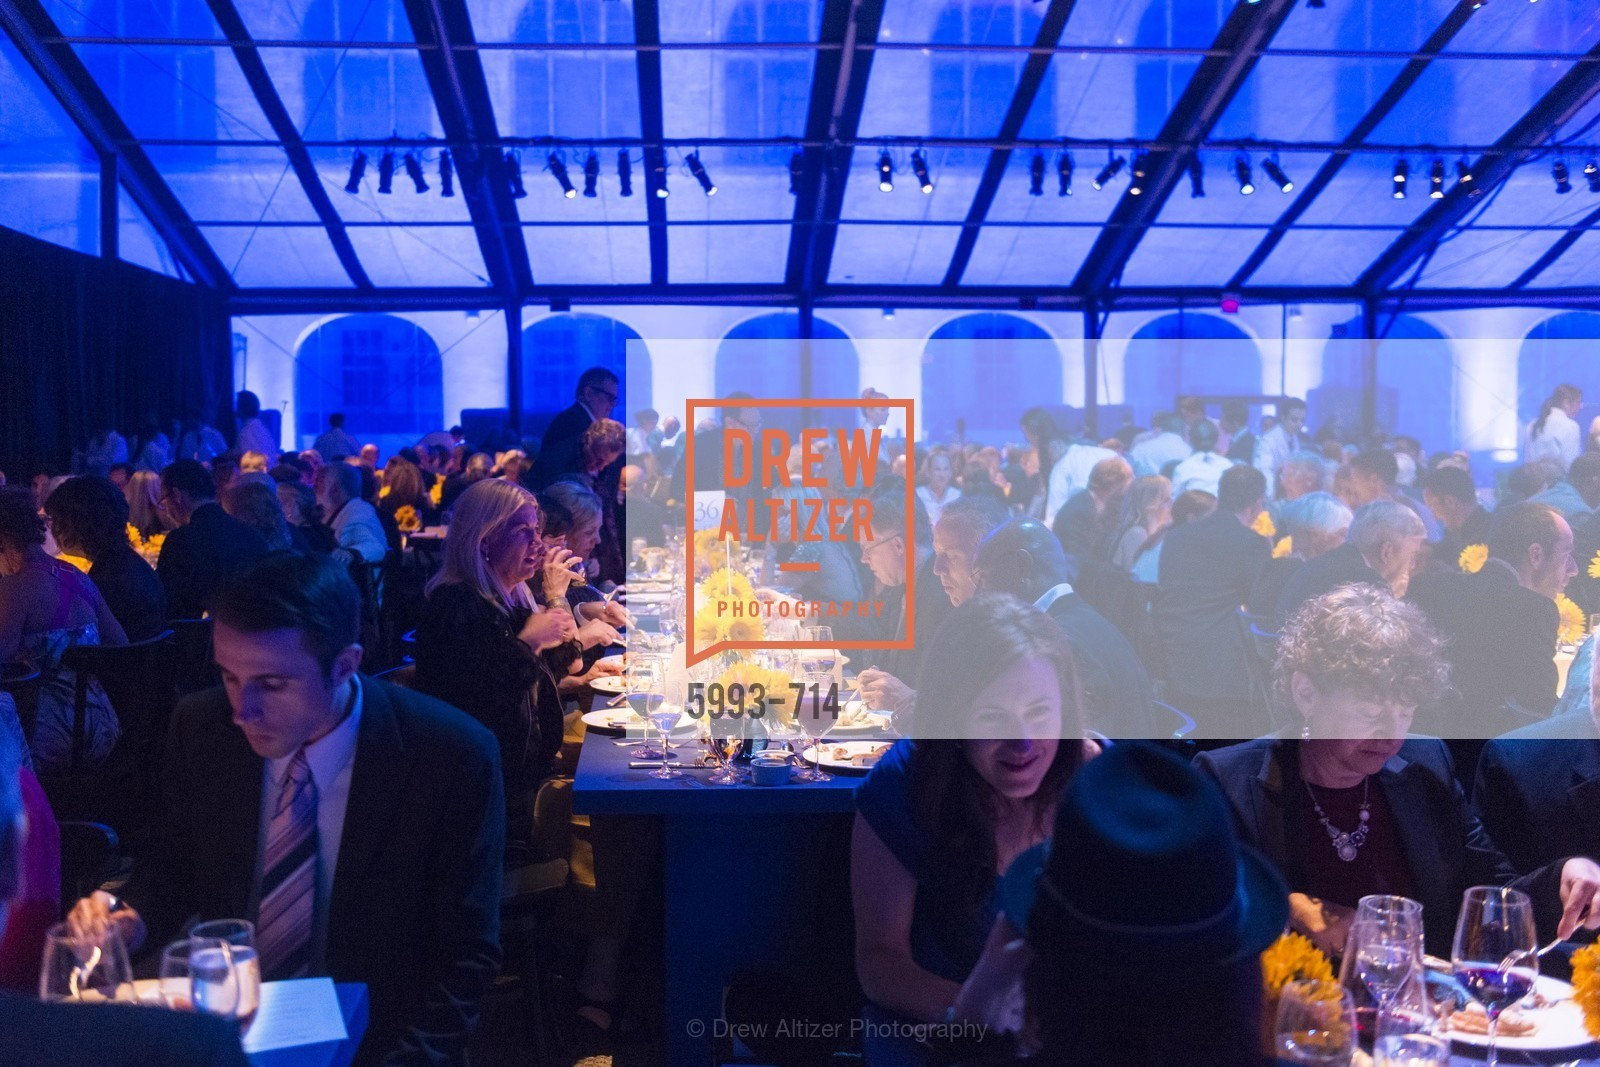 Atmosphere, SFJAZZ Gala 2015 Honors Joni Mitchell with Lifetime Achievement Award, US, May 9th, 2015,Drew Altizer, Drew Altizer Photography, full-service agency, private events, San Francisco photographer, photographer california